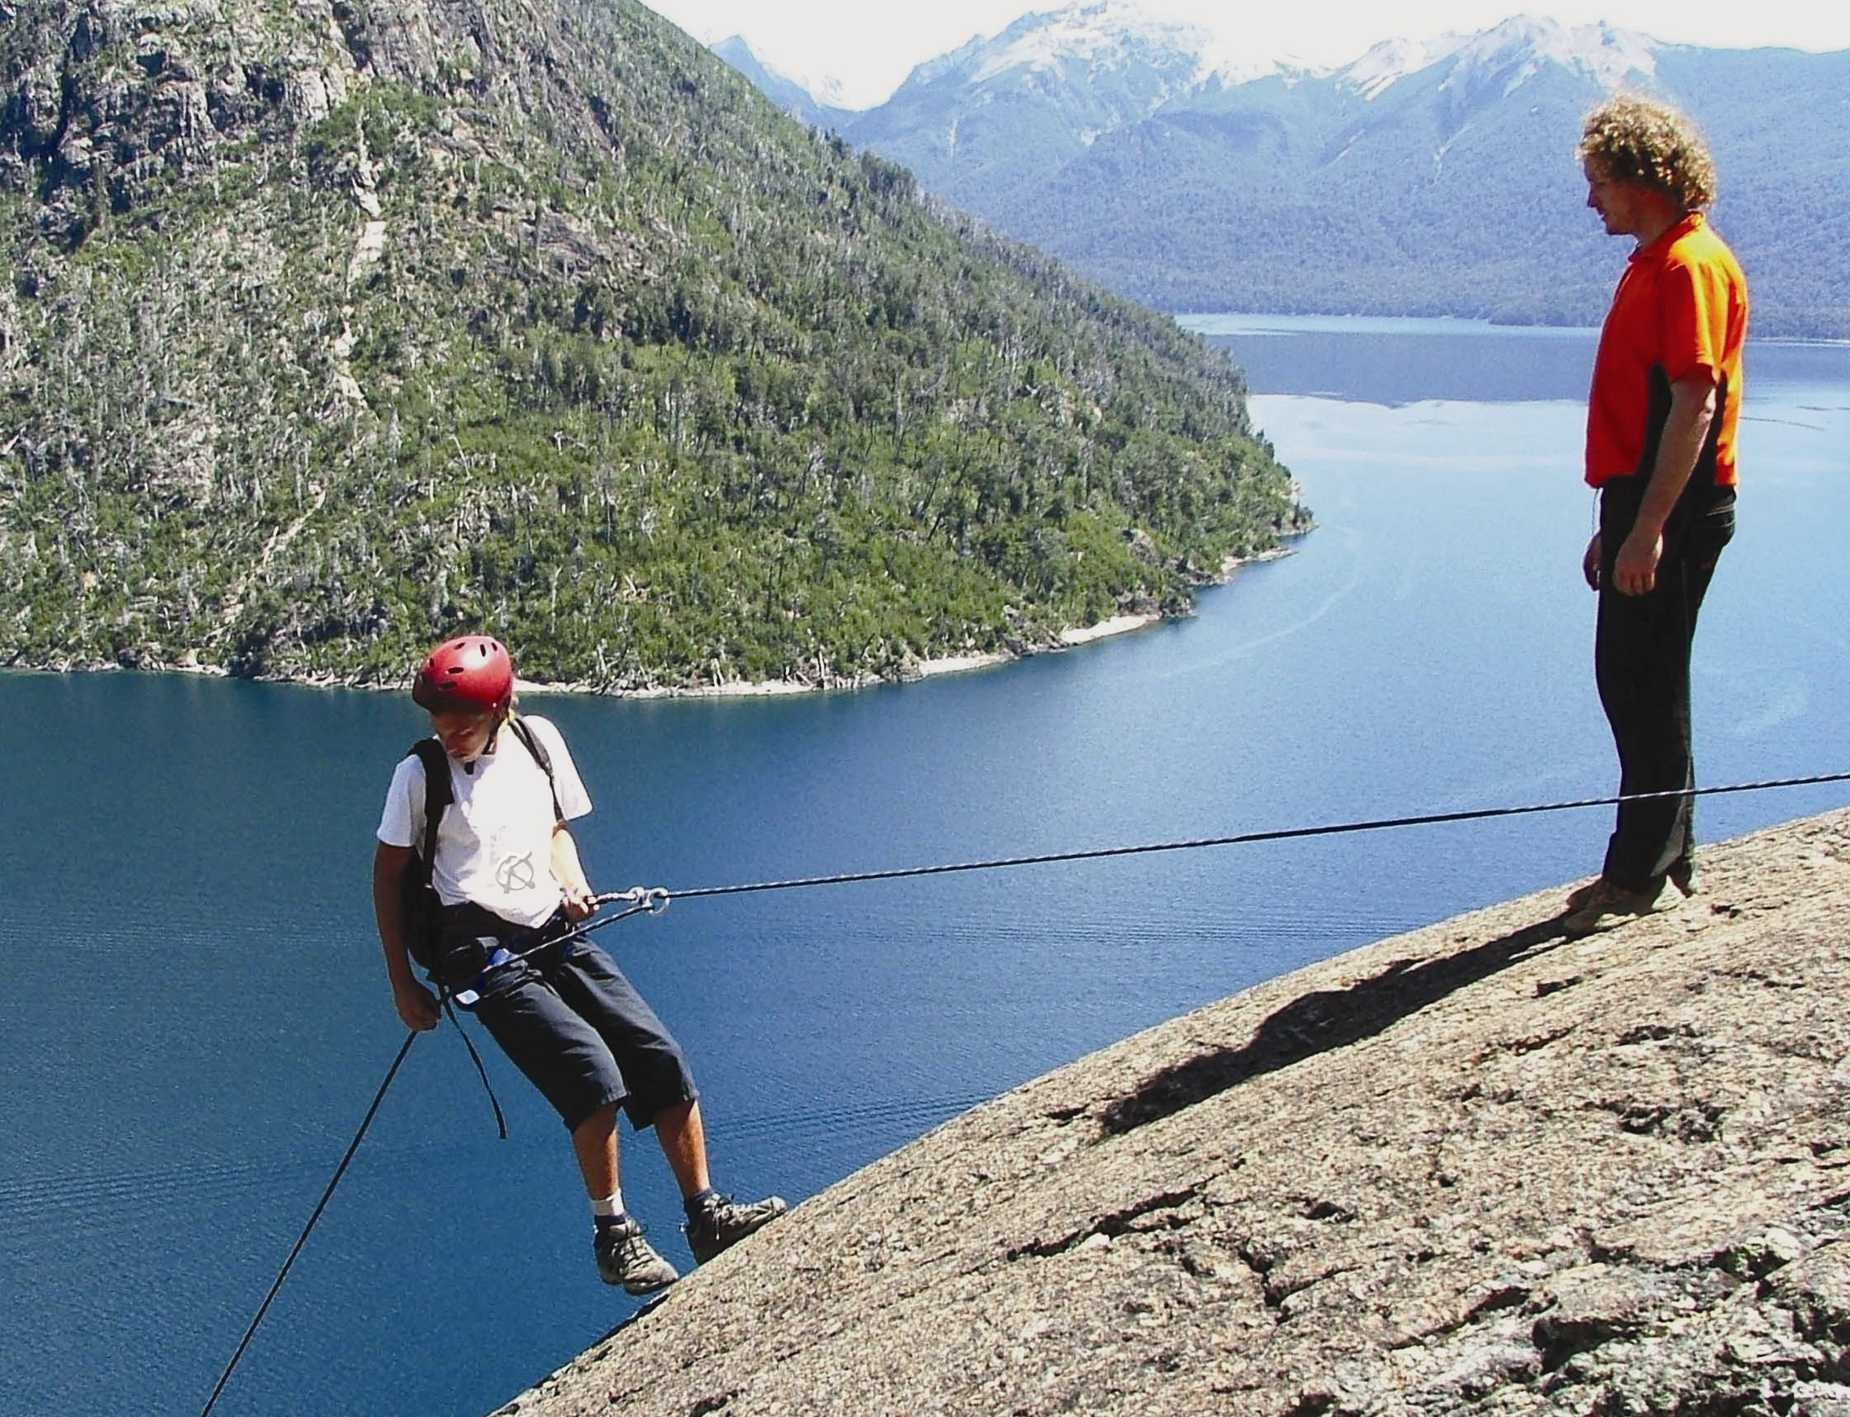 Adventure in Argentina-Rappelling in the Lake District